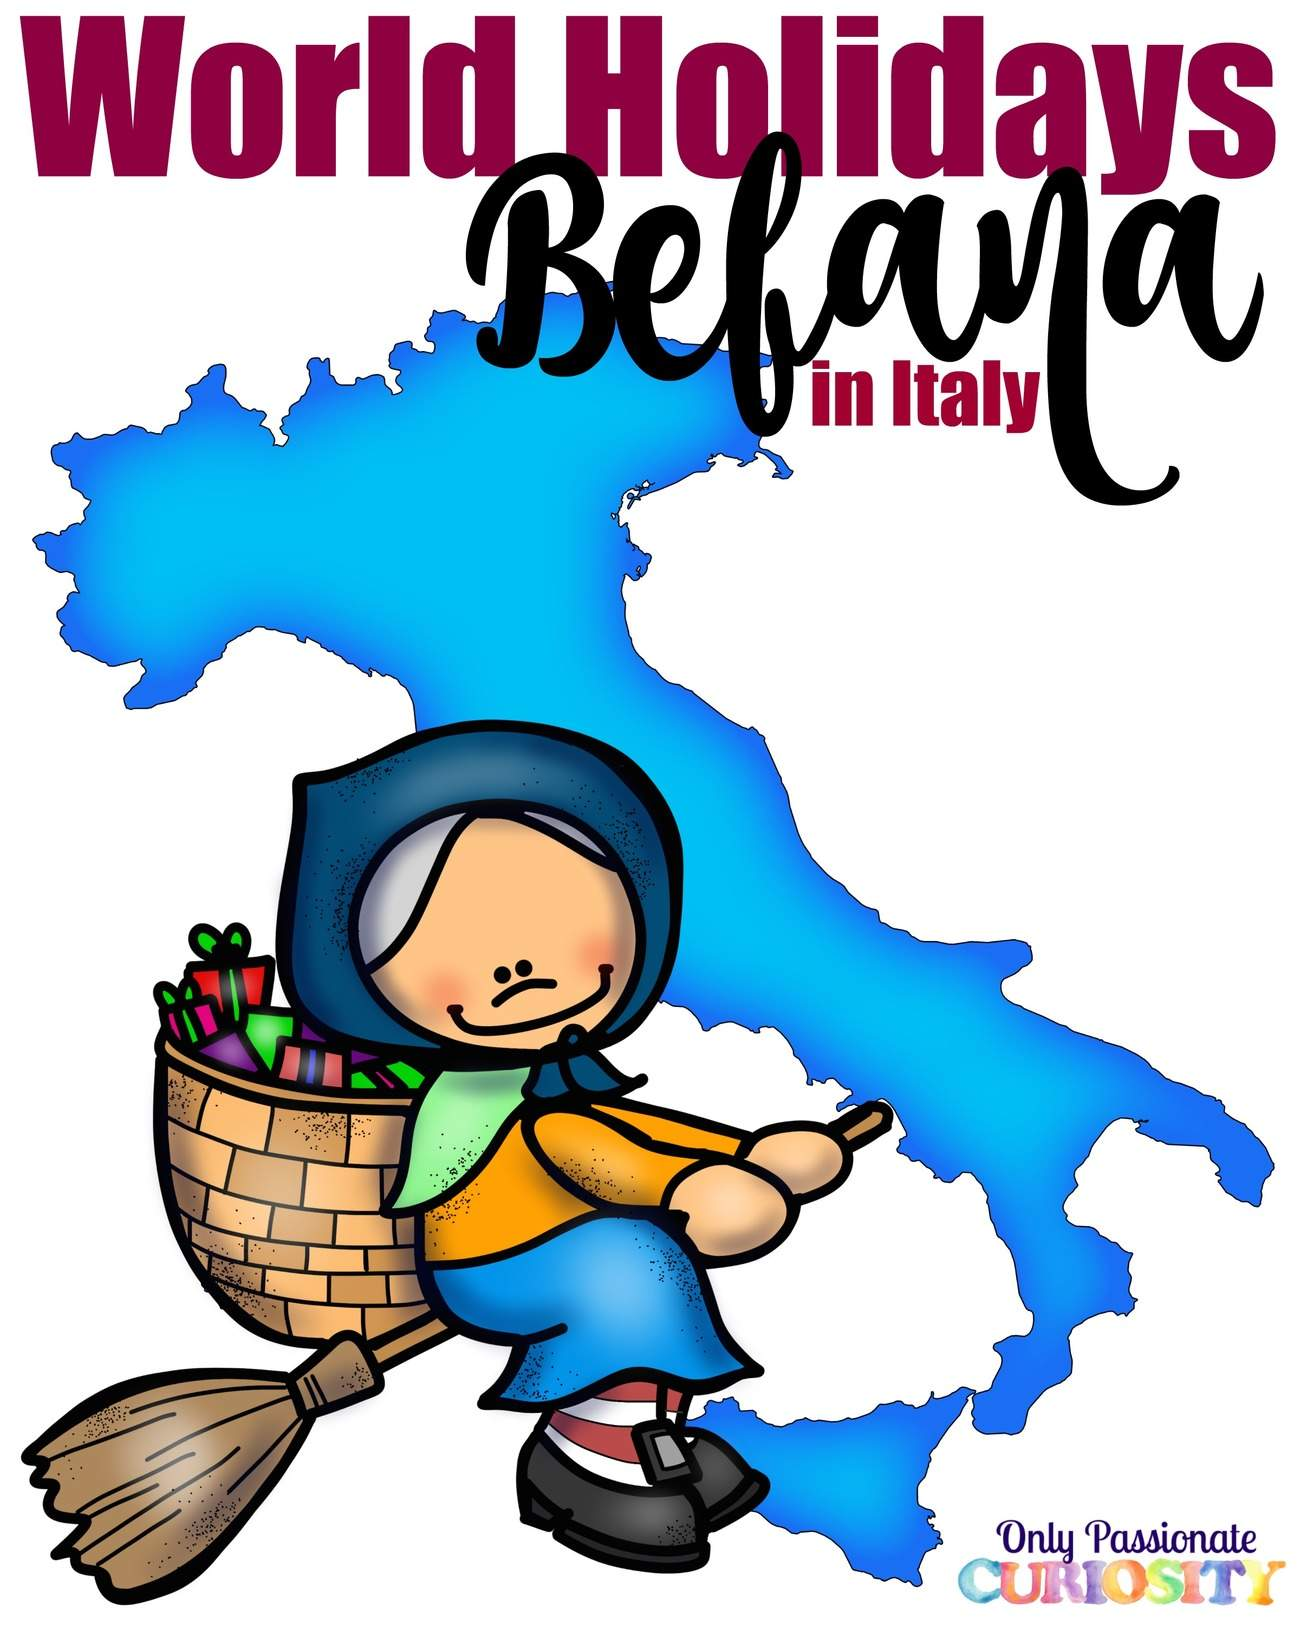 World Holiday Traditions La Befana Amp Italy Only Passionate Curiosity